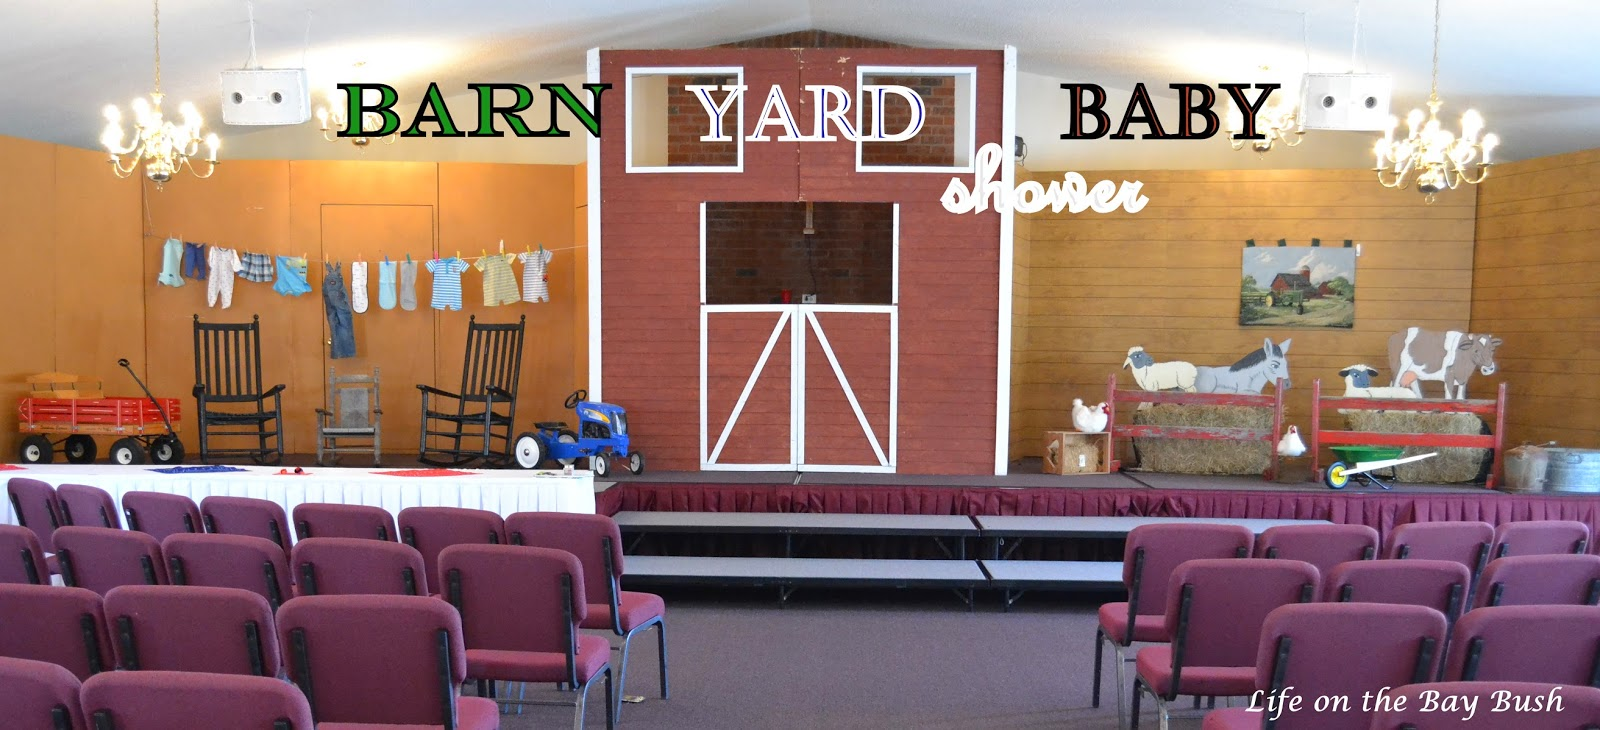 Sister's Barn Yard Baby Shower